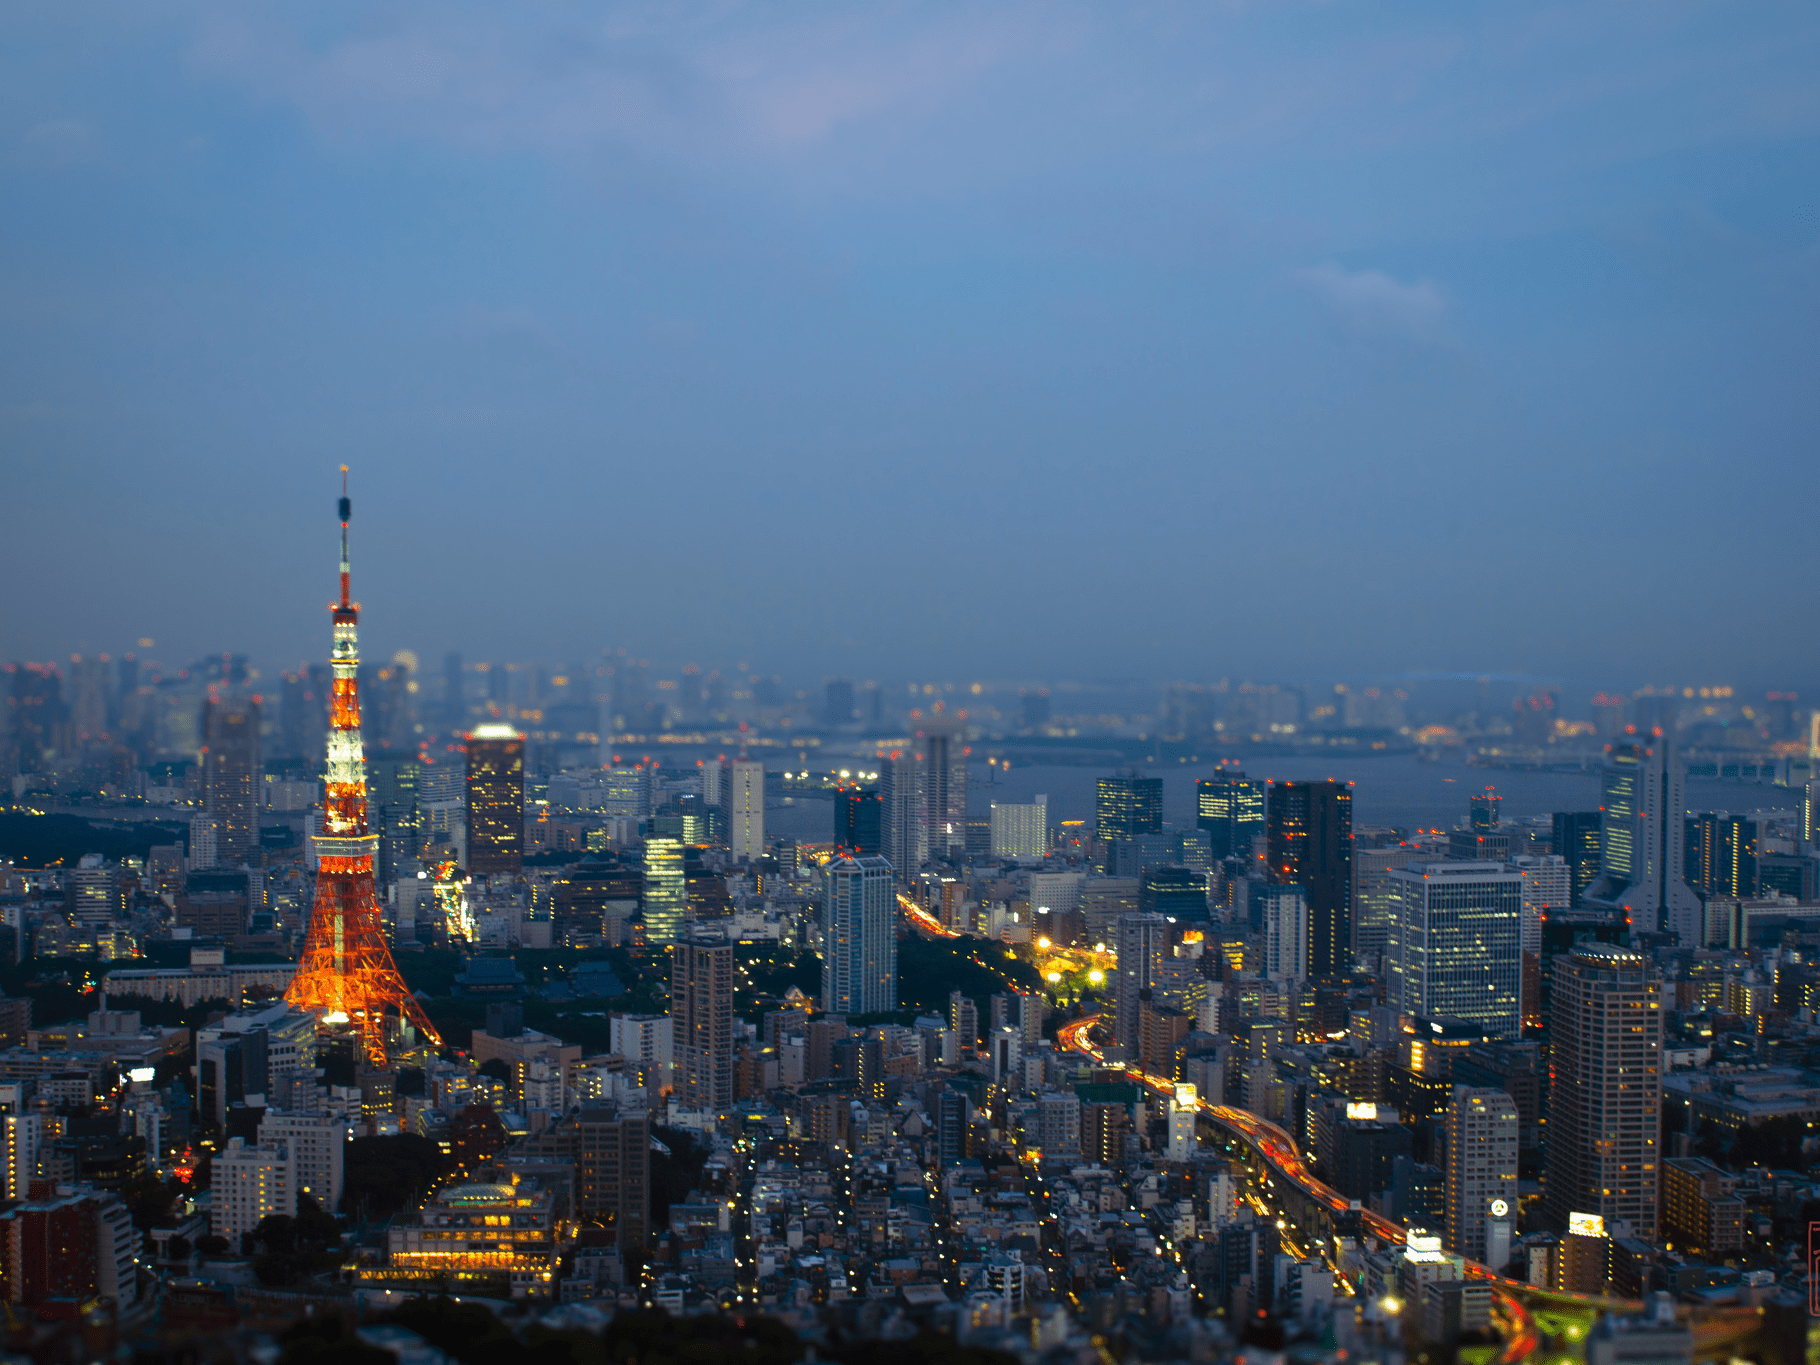 Tokyo took the lead with 15 million people by 1965.